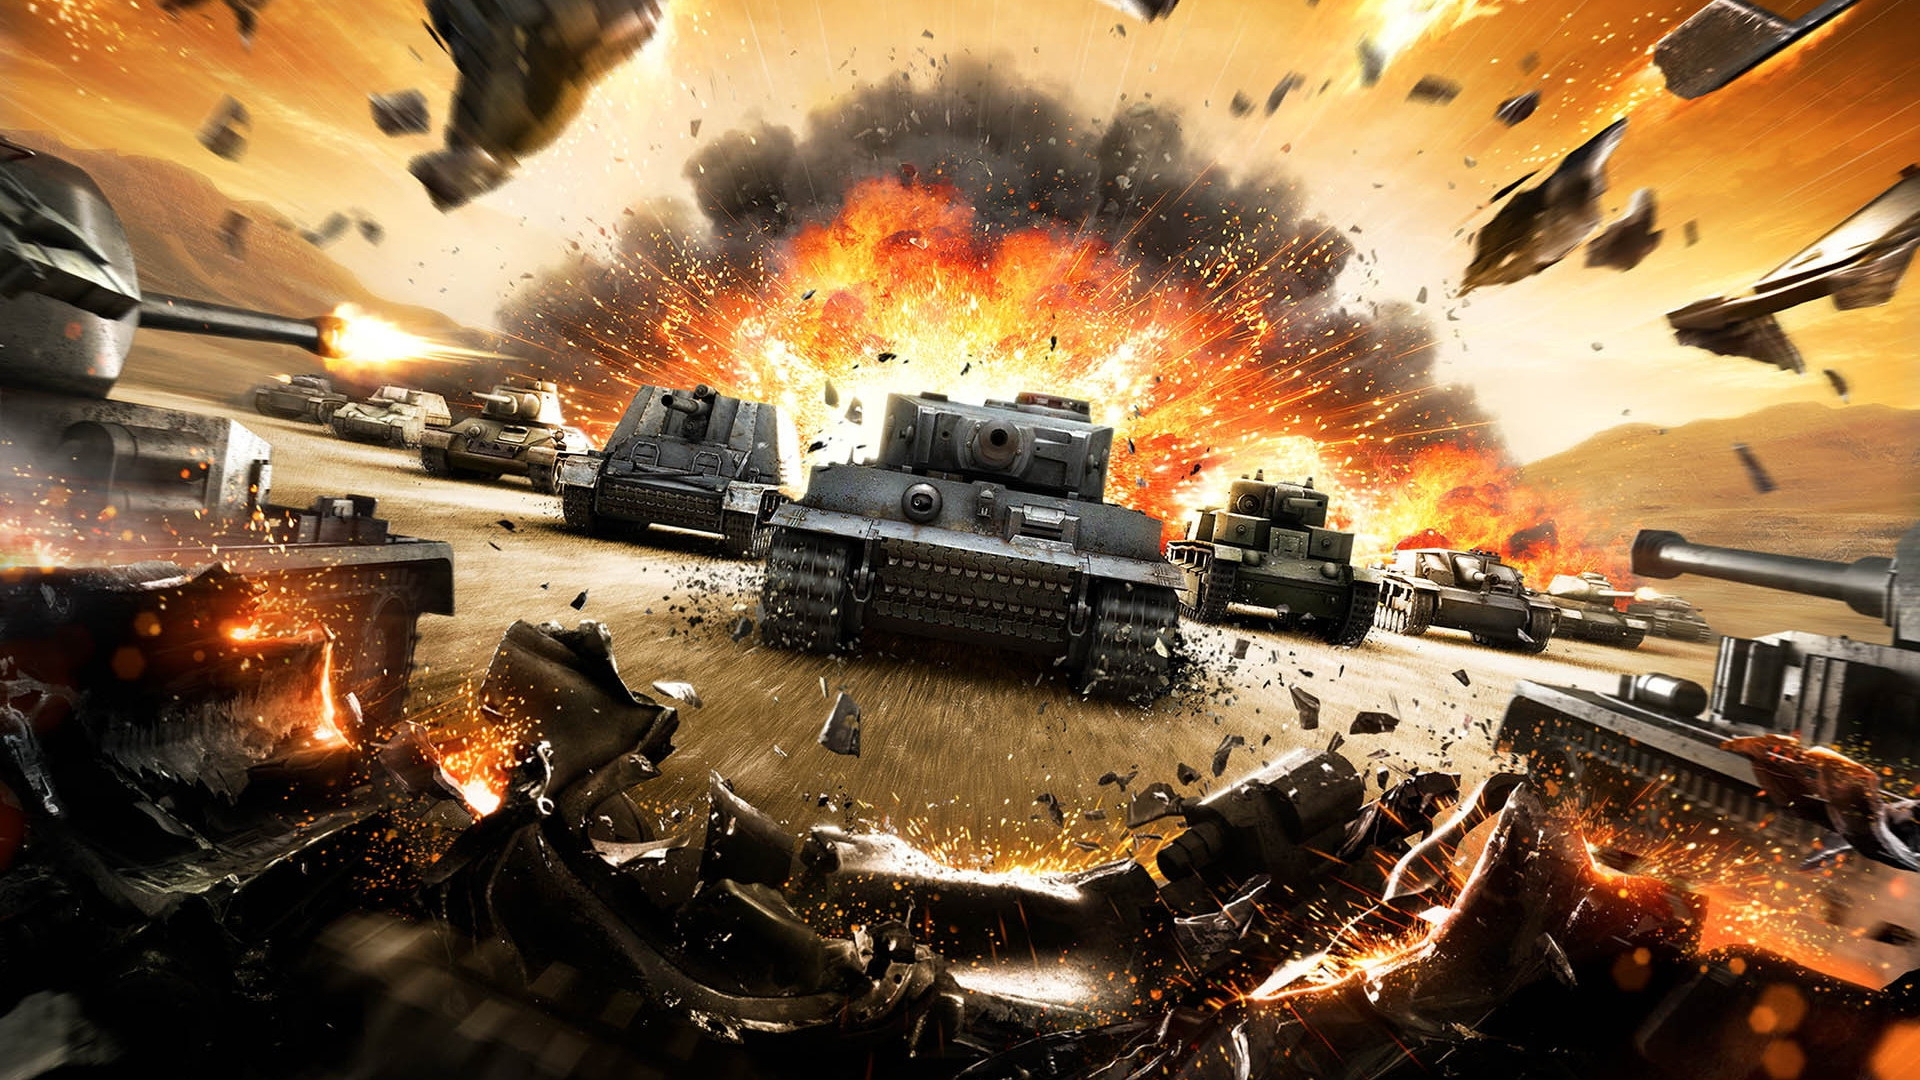 37859 download wallpaper Games, World Of Tanks screensavers and pictures for free